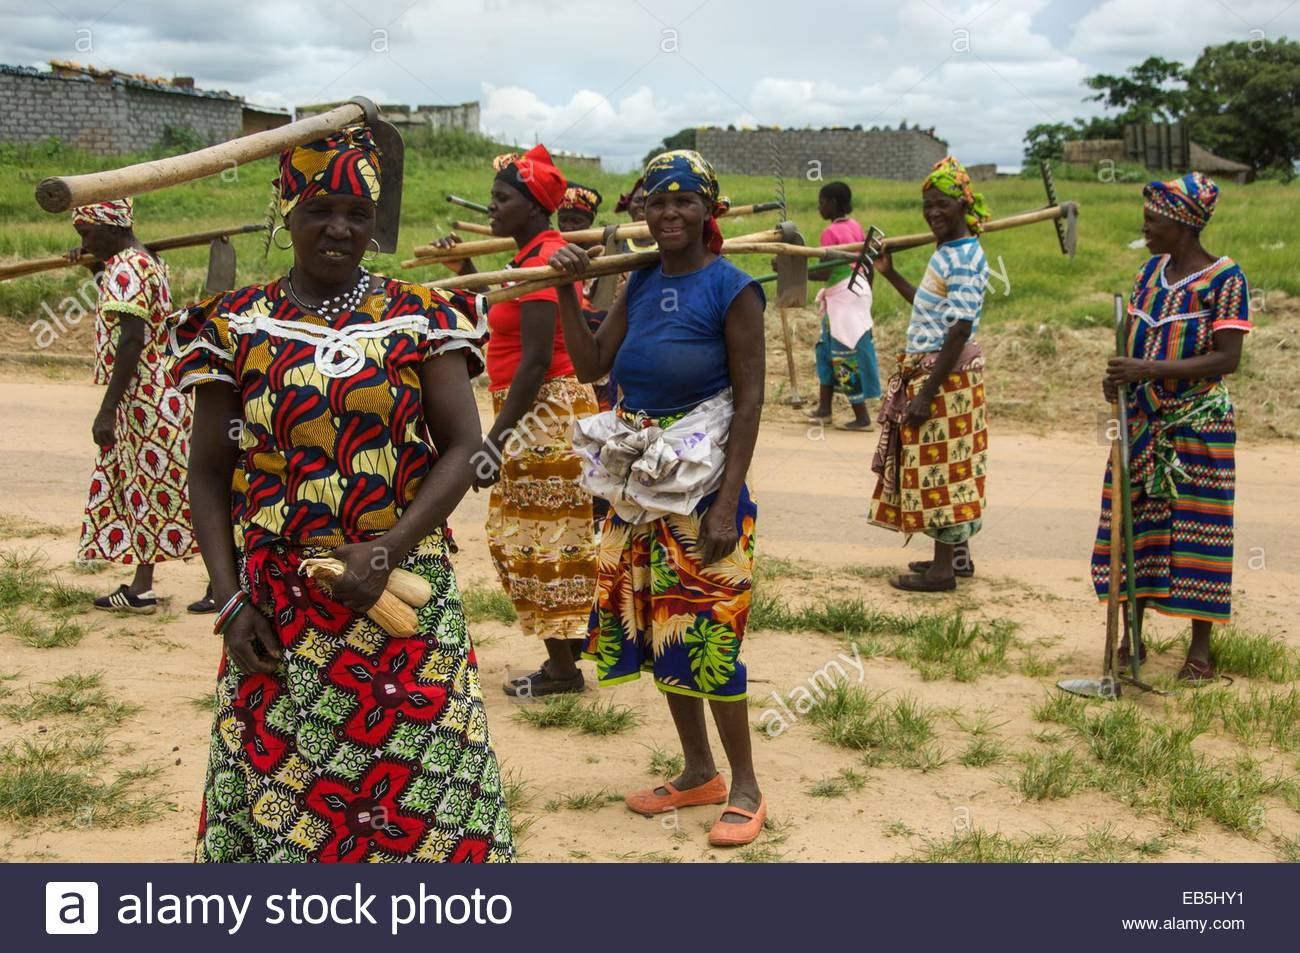 An all female work party in the town of Cuito Cuanavale. Stock Photo